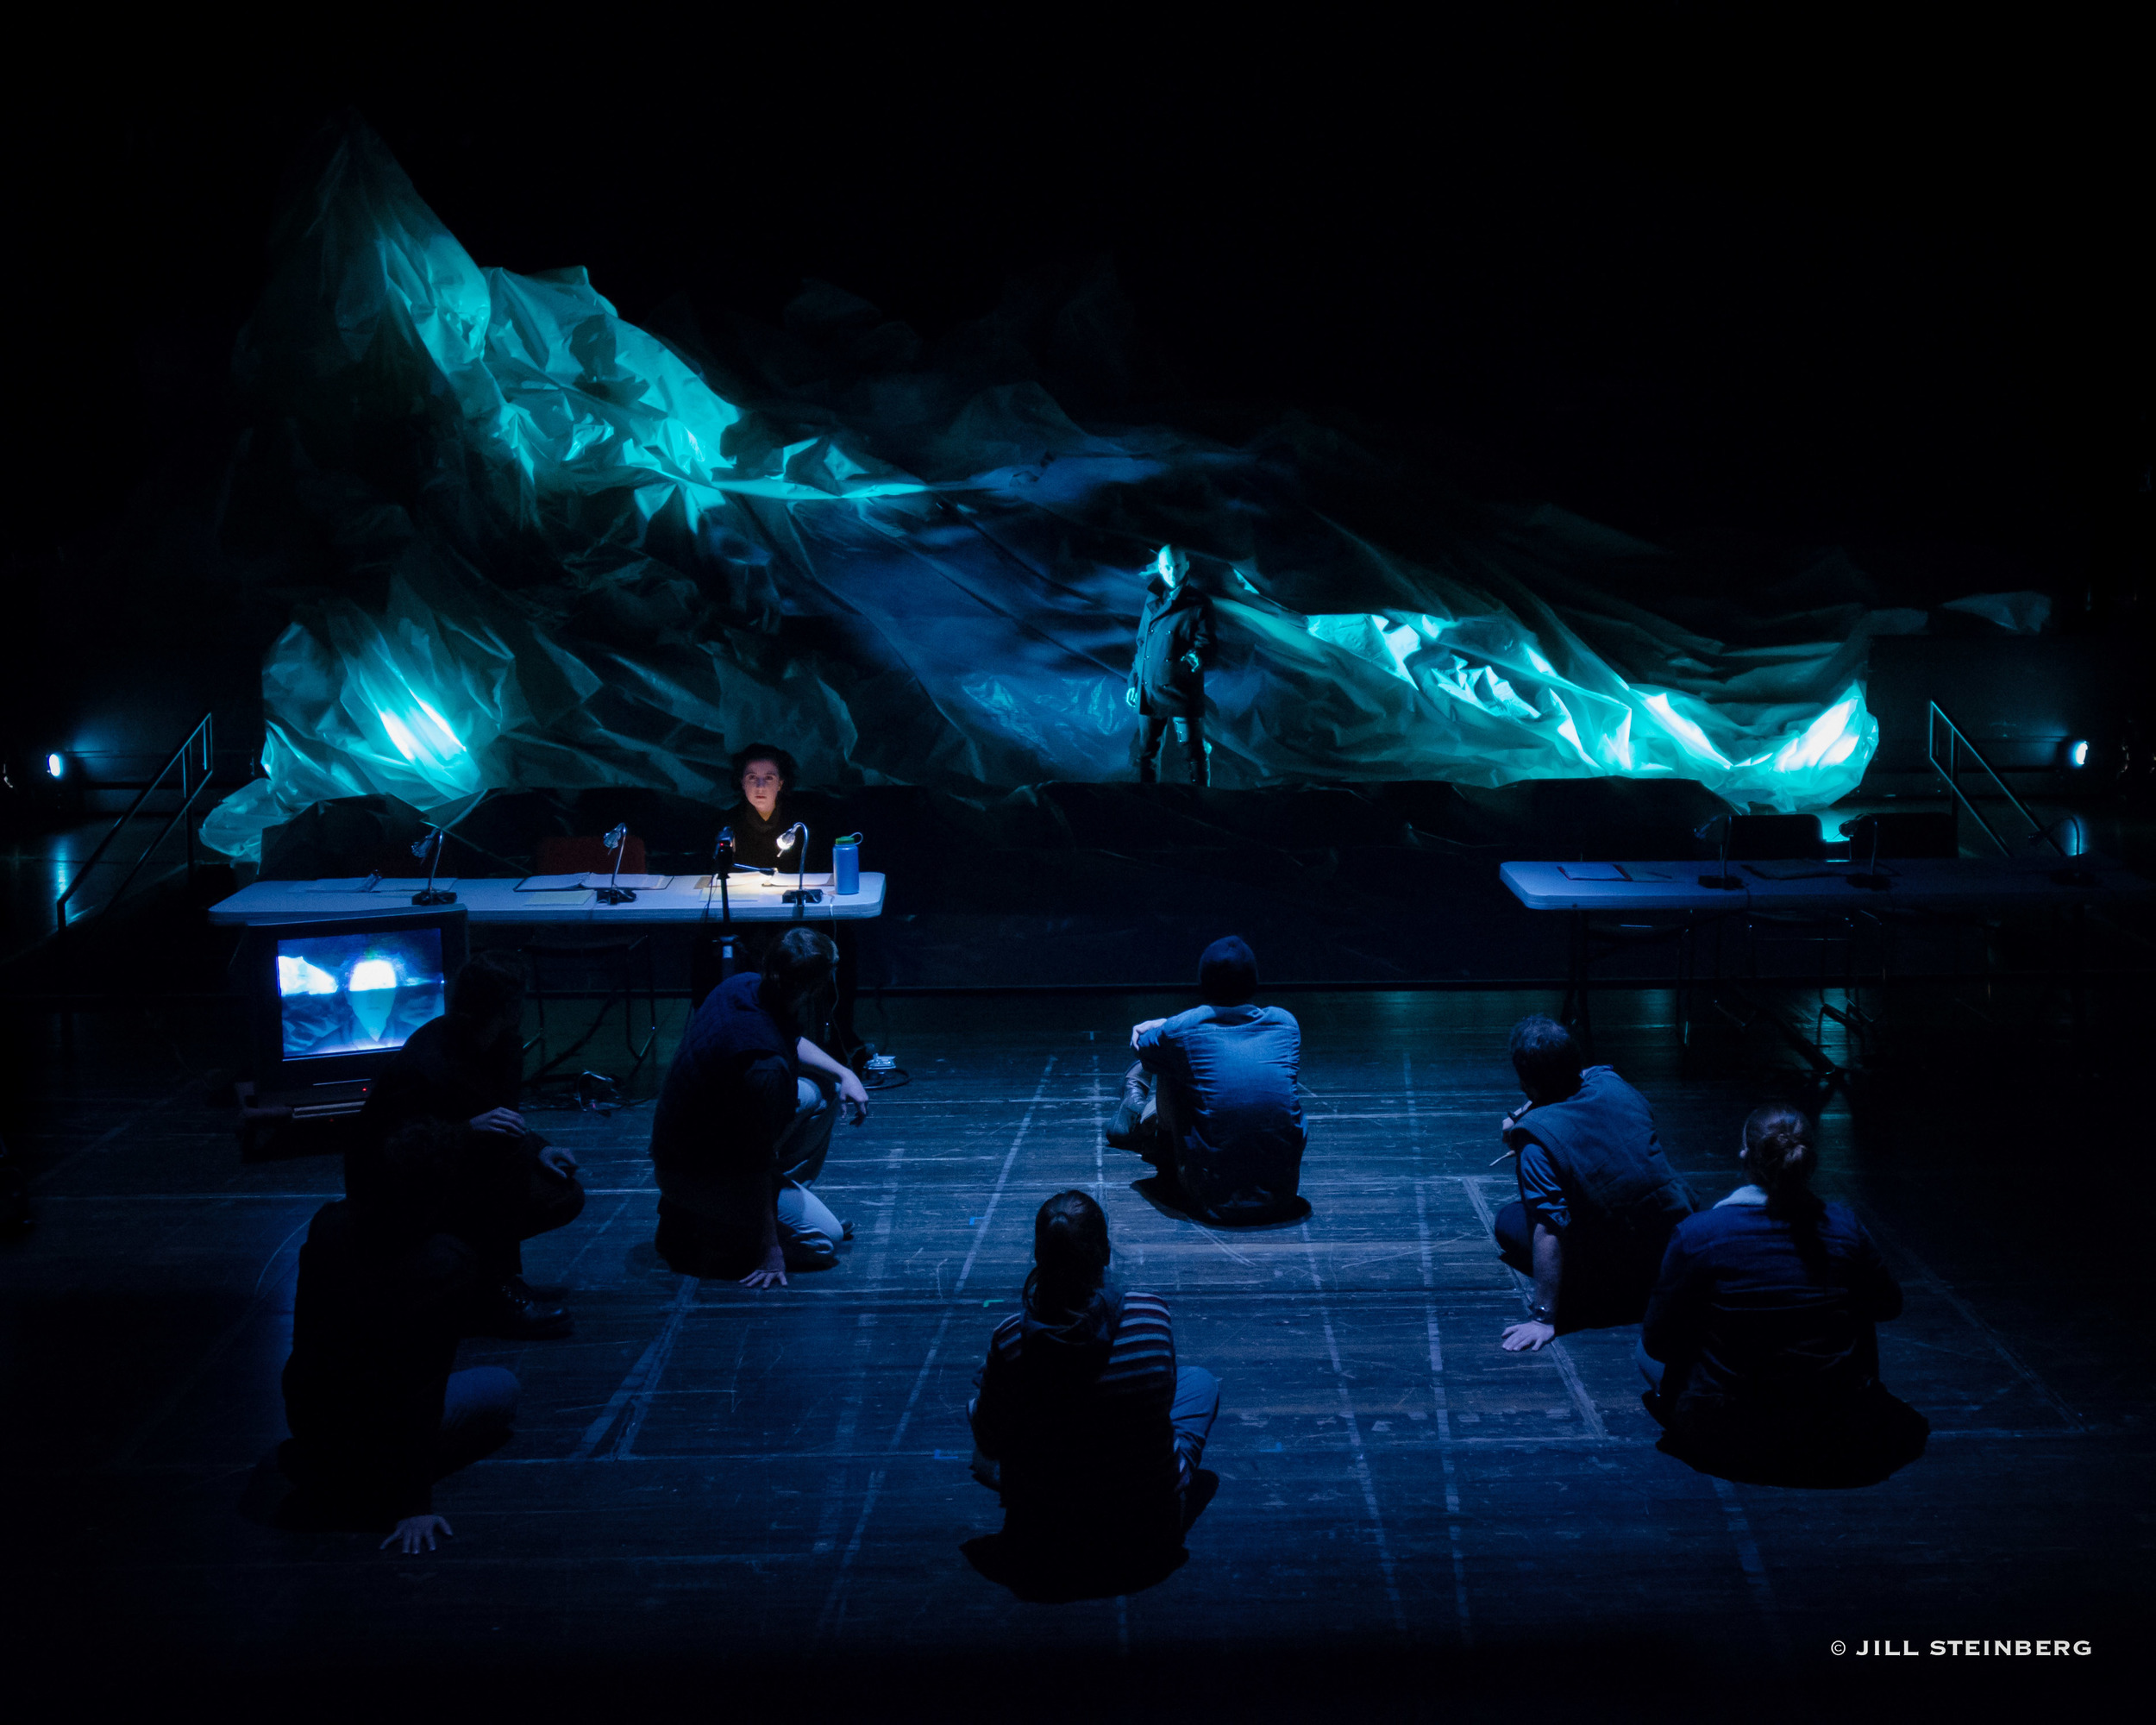 2014-04-11 - Moby Dick — Rehearsed_Moby Dick - Rehearsed_0264_.jpg